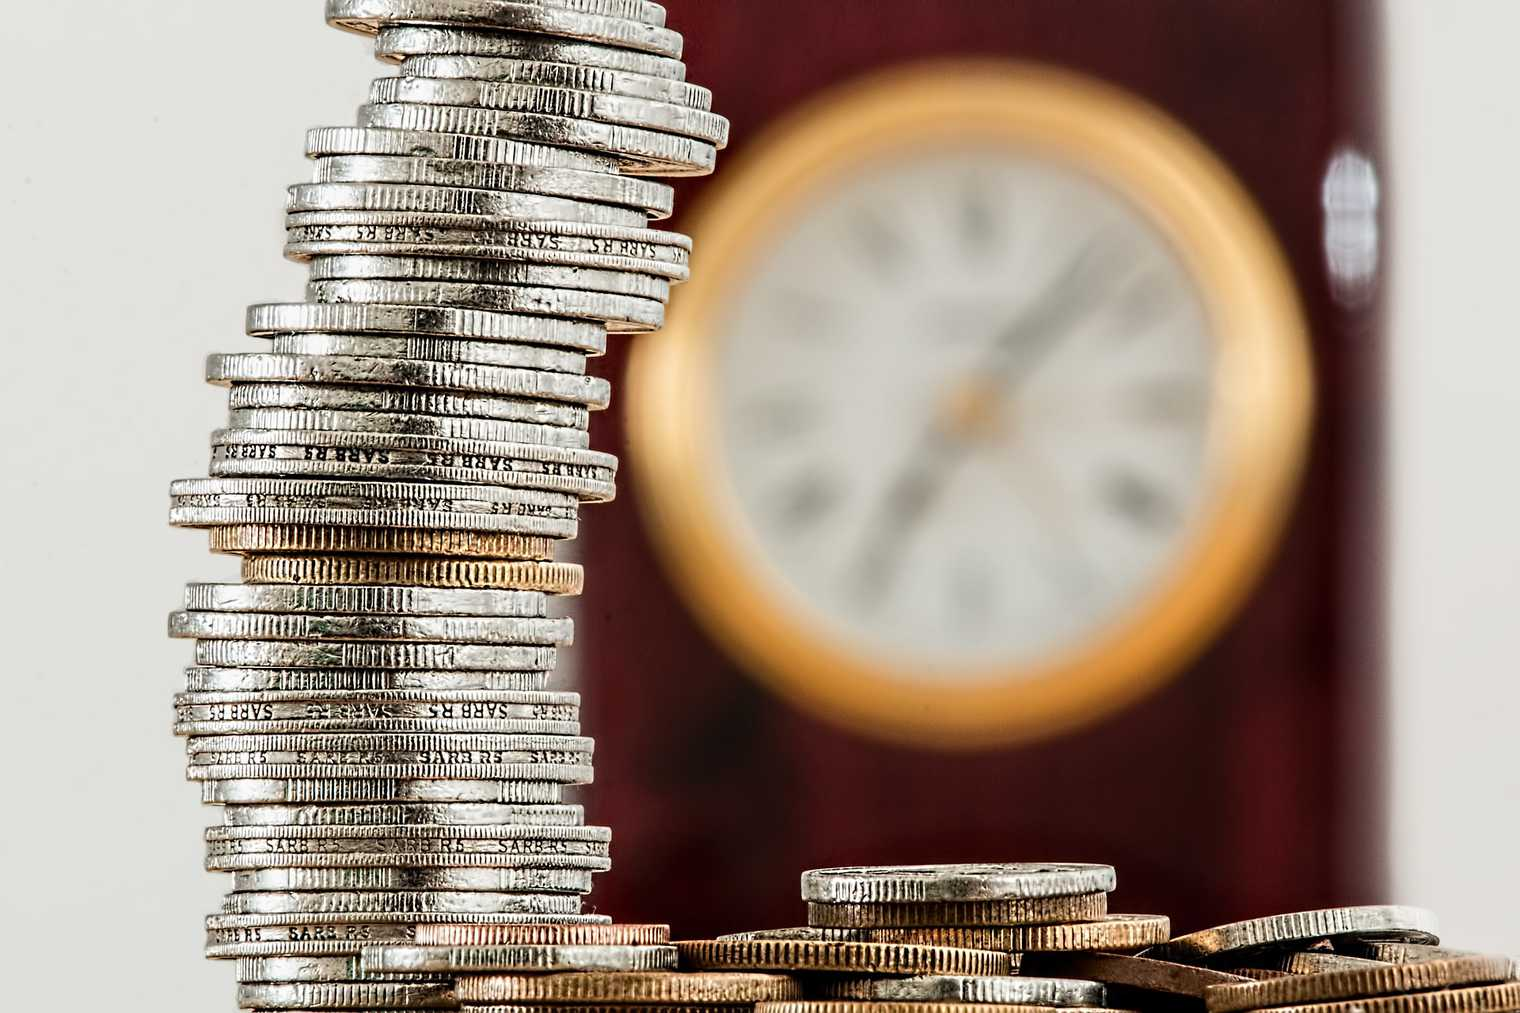 Keeping control of time and costs